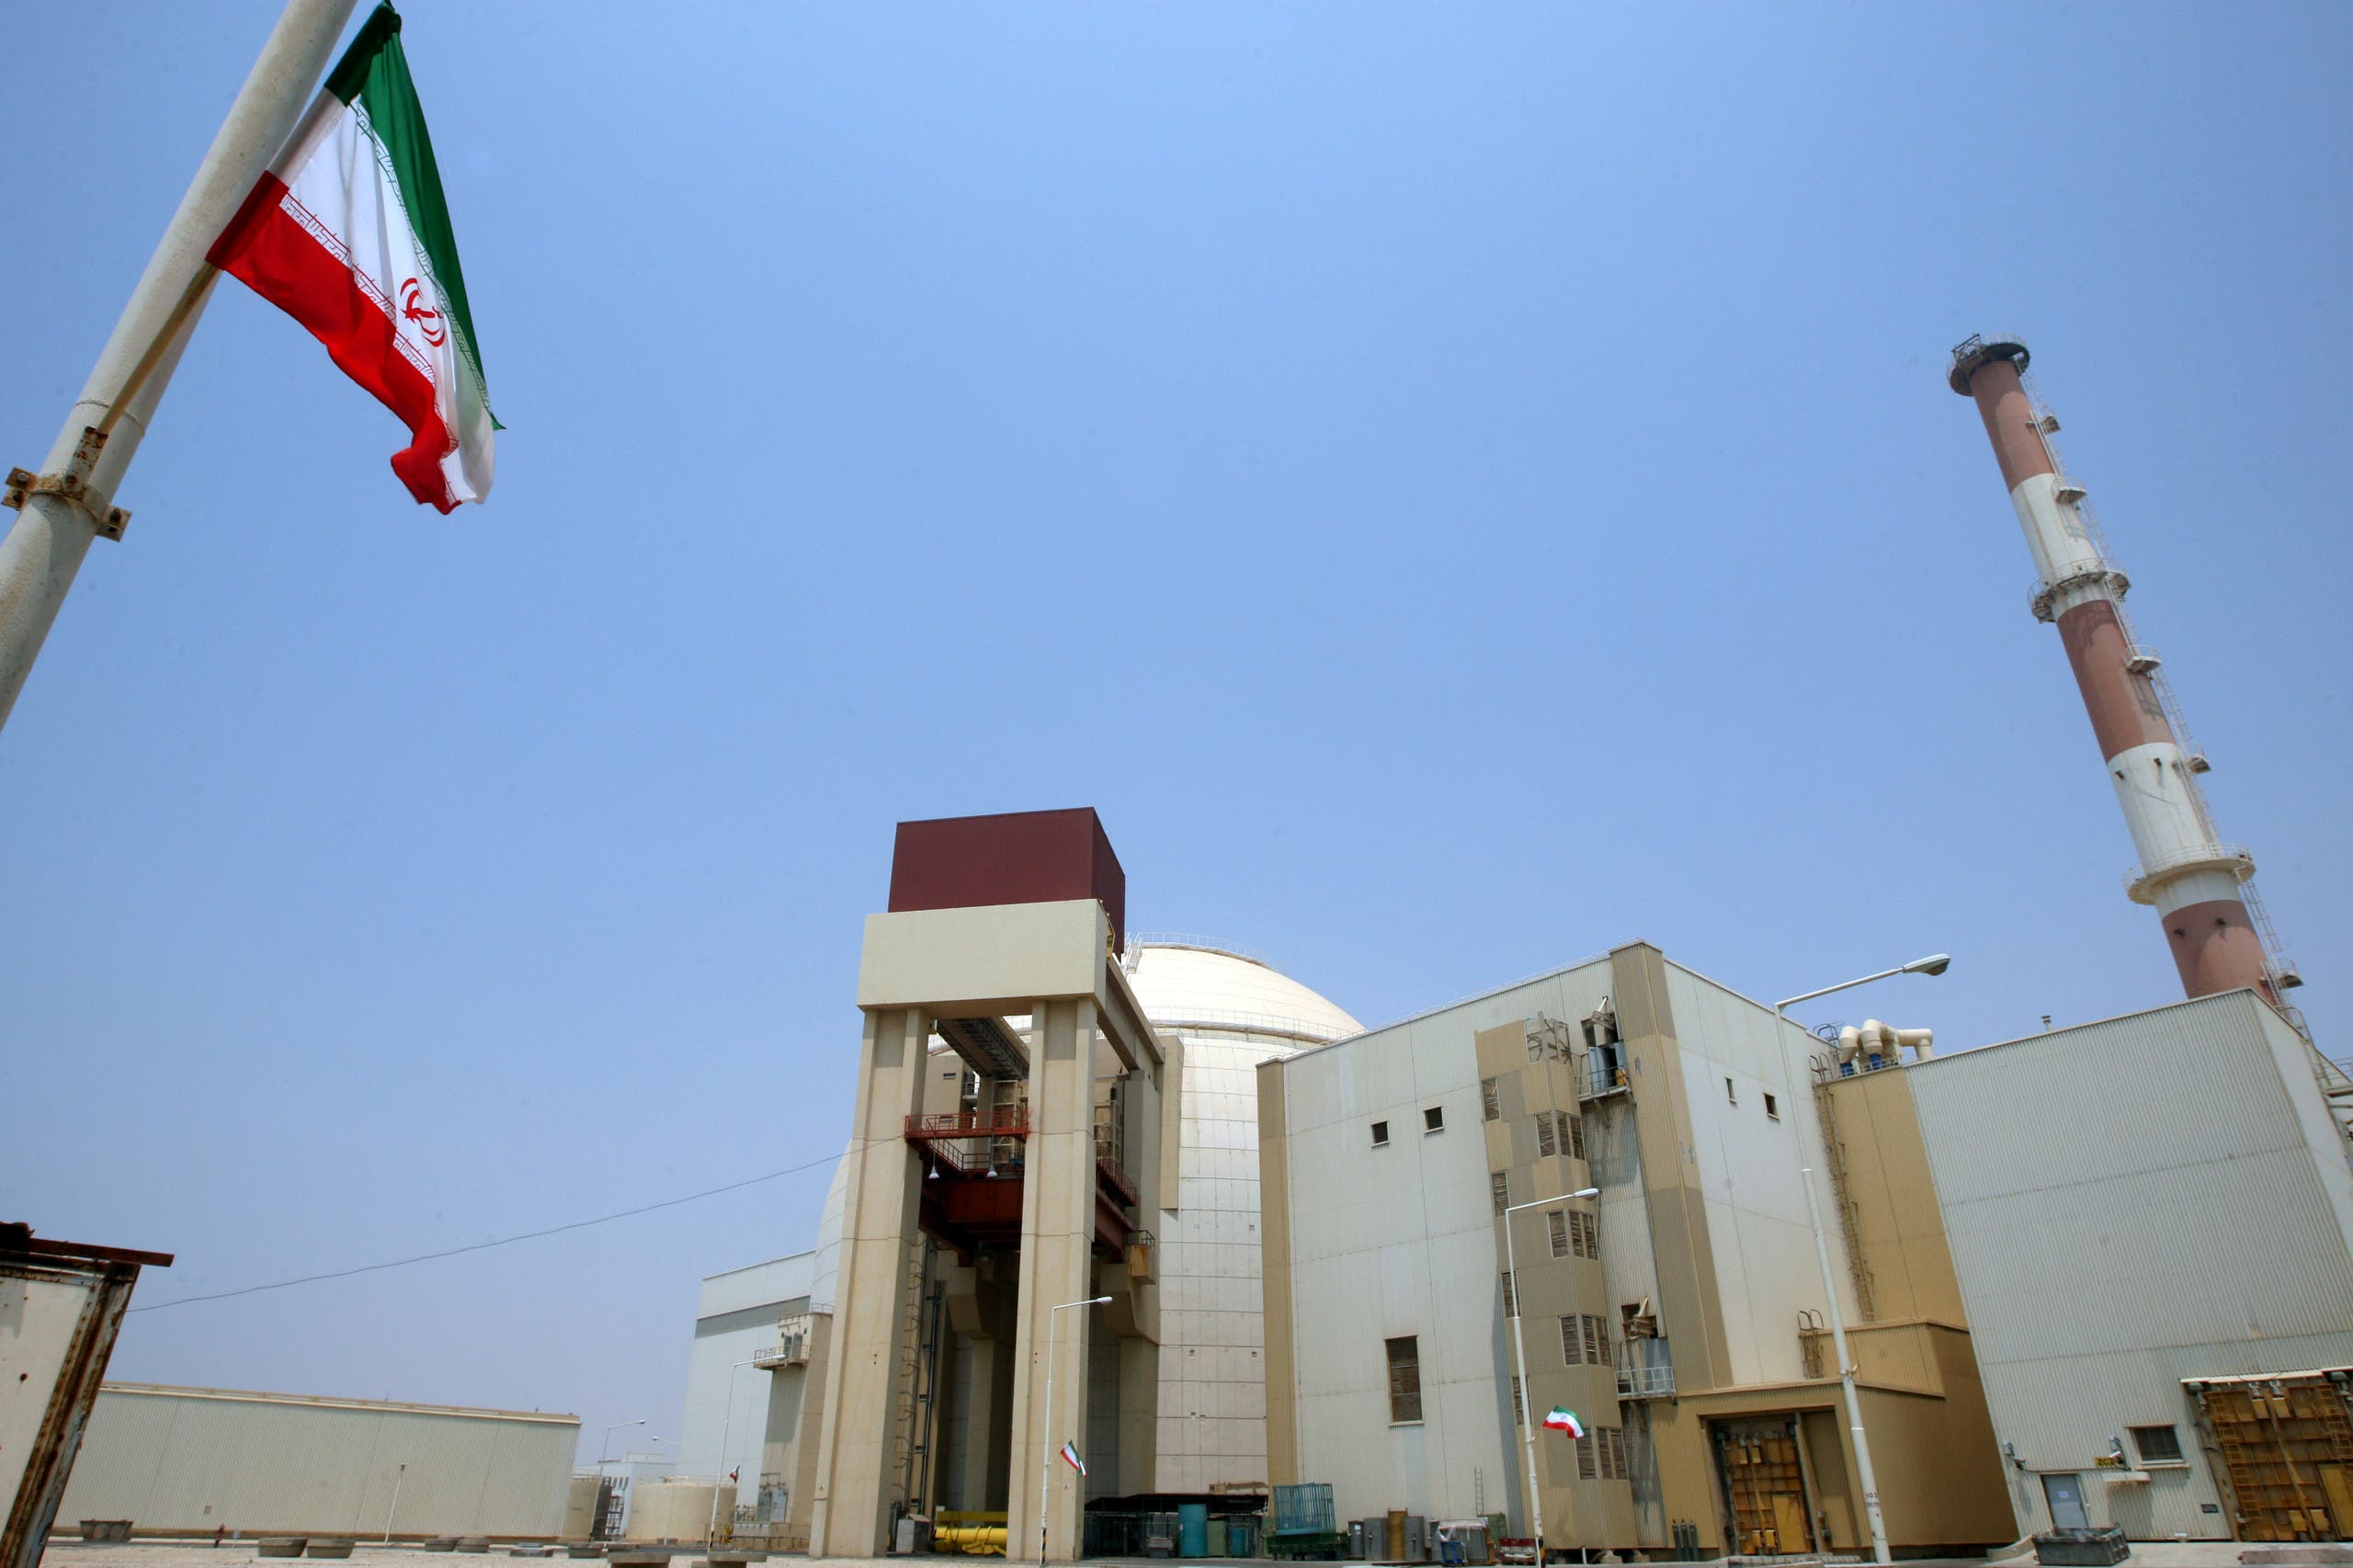 A picture shows the reactor building at the Russian-built Bushehr nuclear power plant in southern Iran on August 21, 2010 during a ceremony initiating the transfer of Russia-supplied fuel to the facility after more than three decades of delay. (AFP)